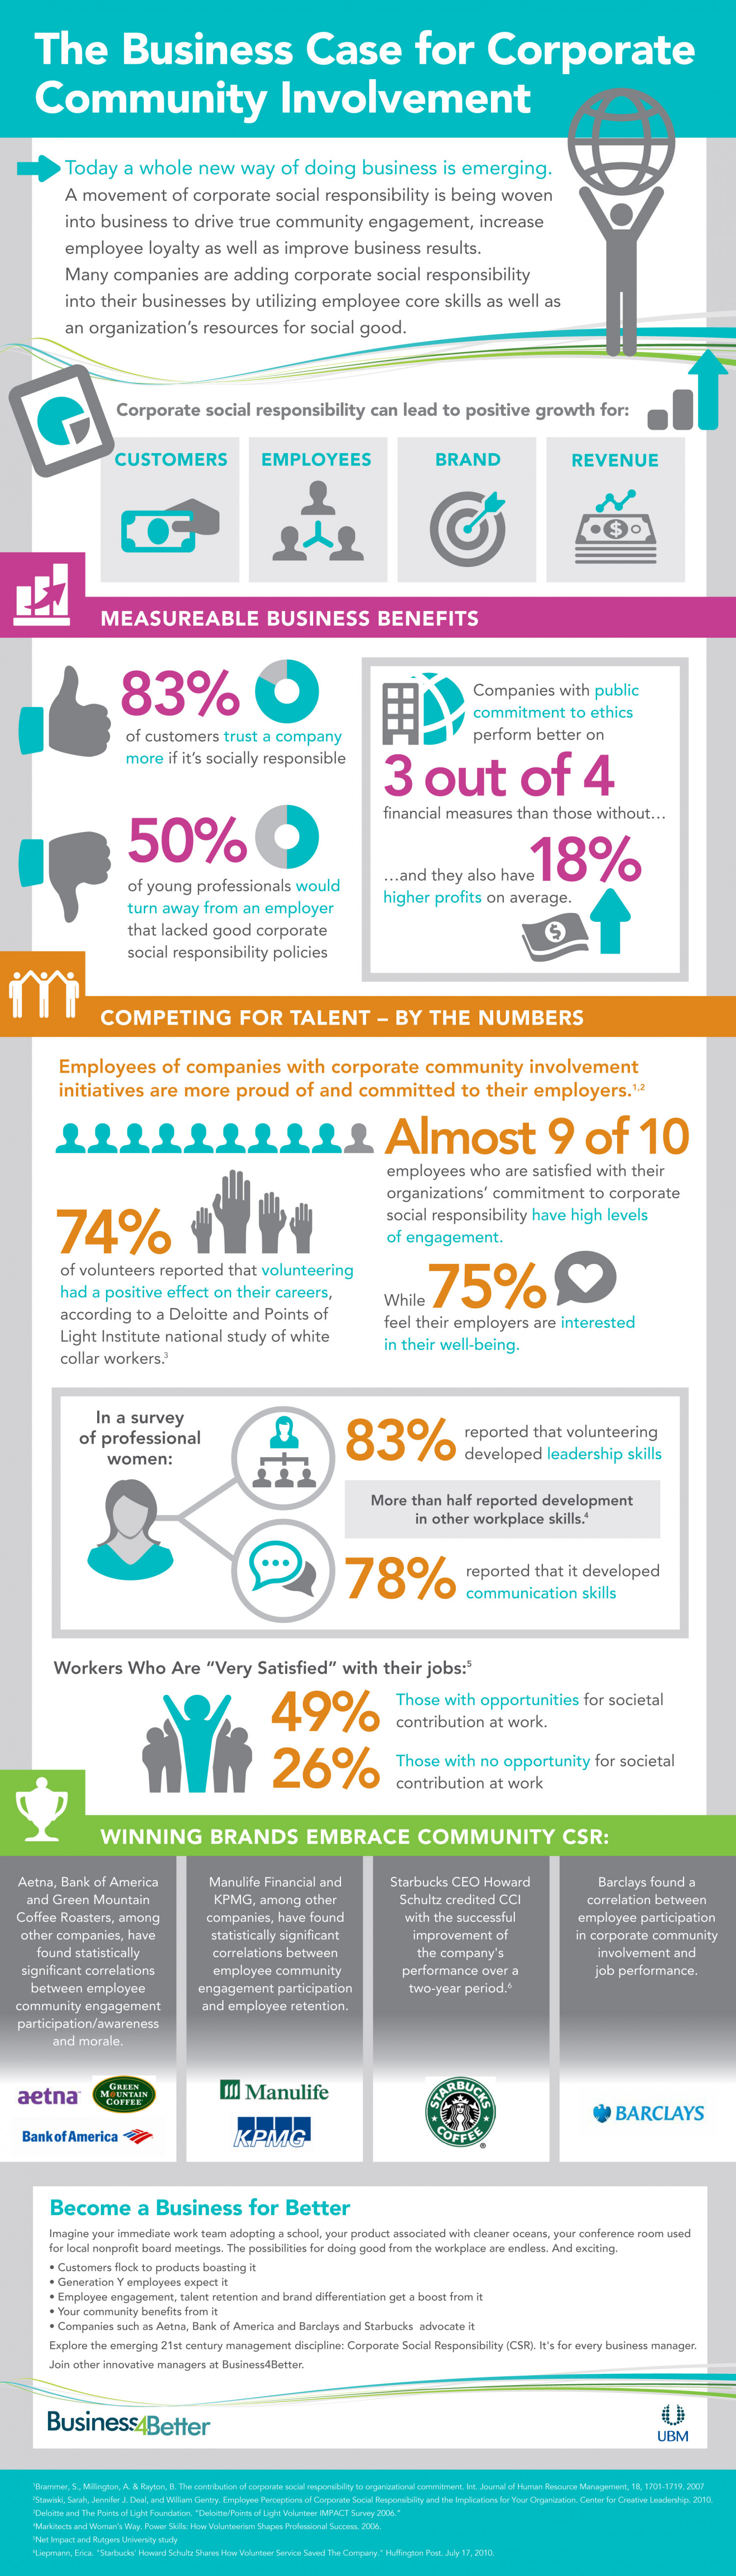 Business4Better: The Case for Corporate Community Involvement Infographic